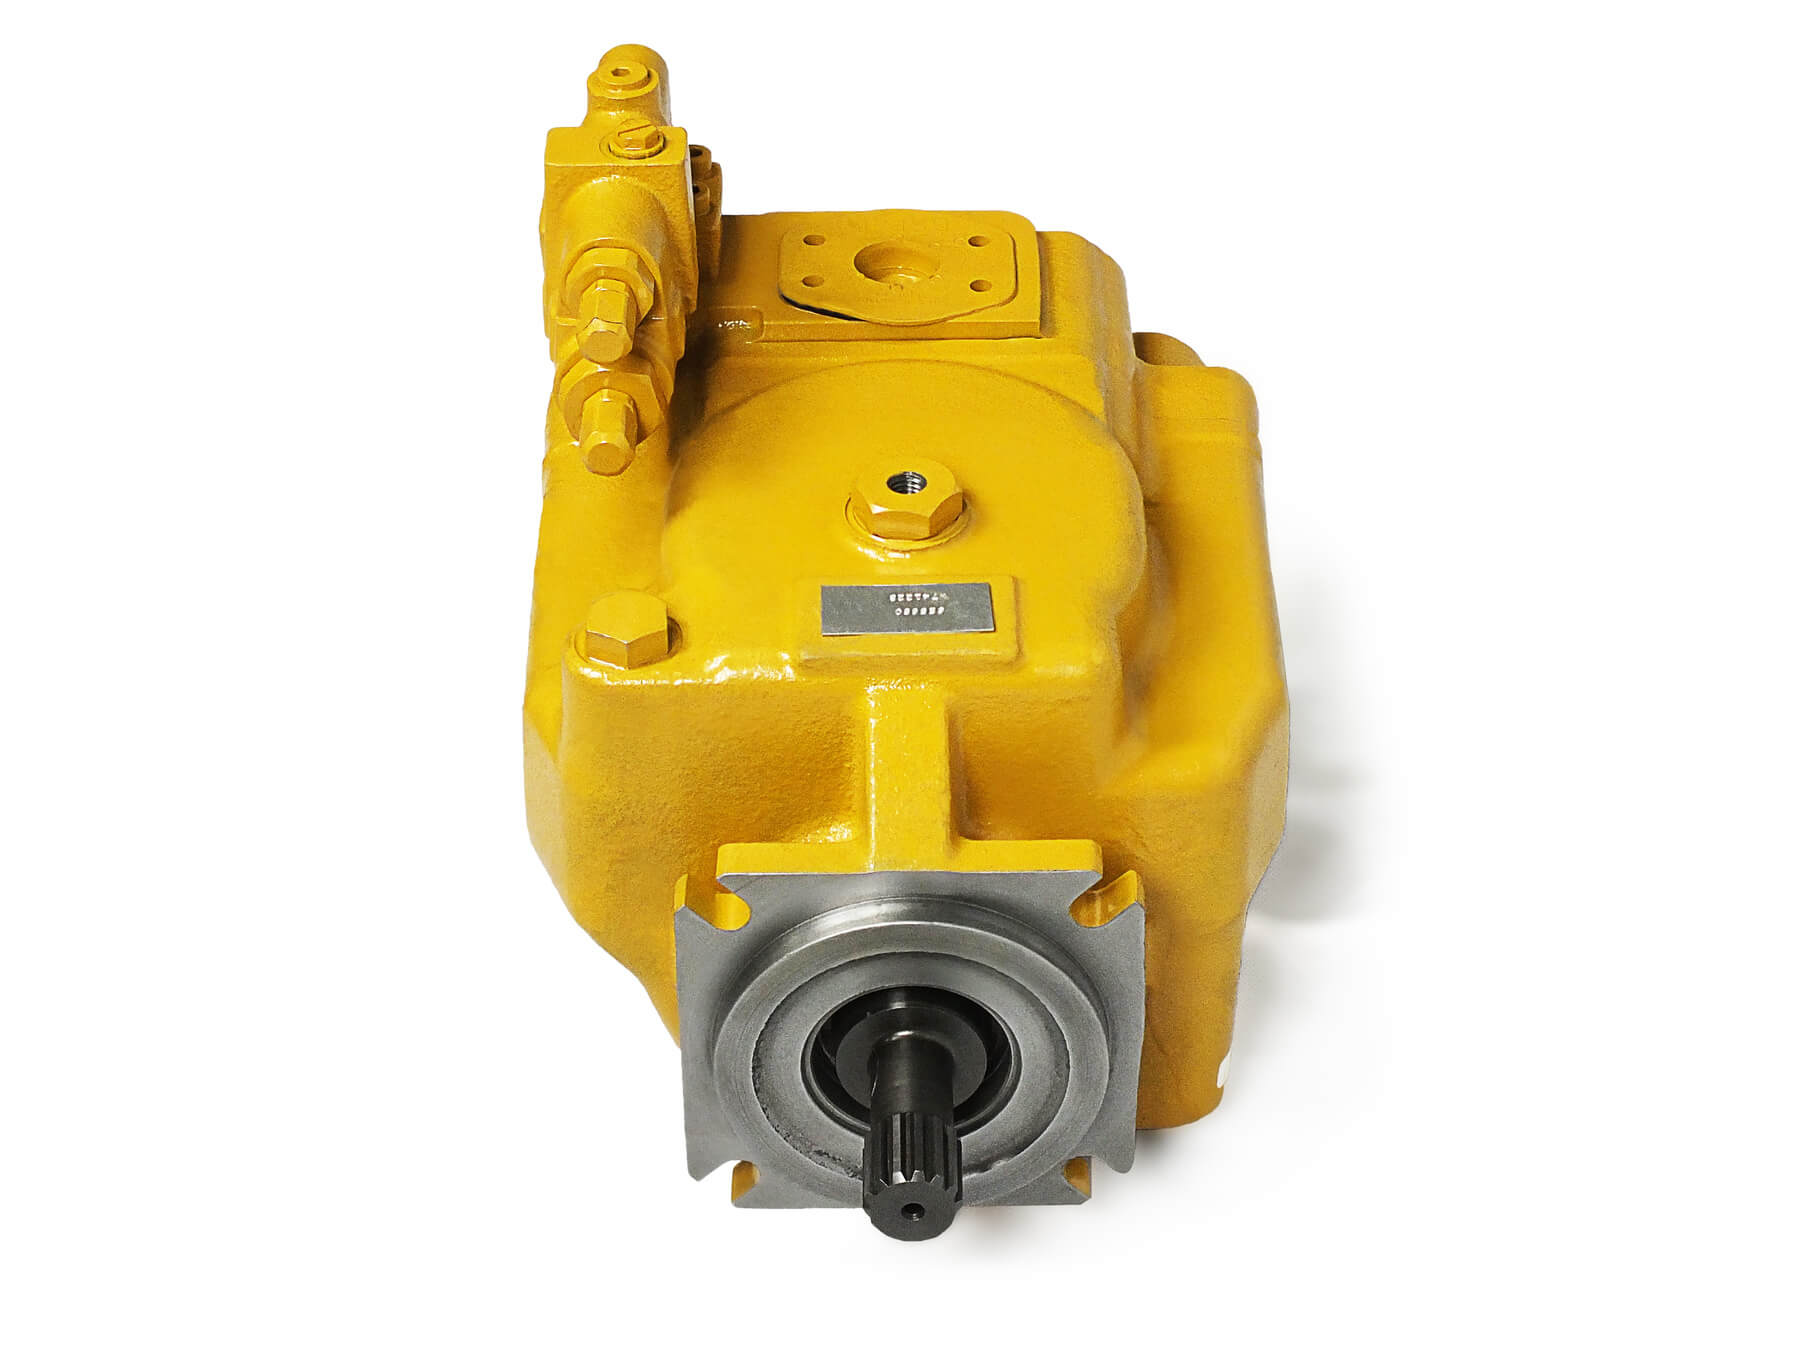 Caterpillar Replacement Hydraulic Pump - Model 6E-5650 Axial Piston Pump  Variable Displacement